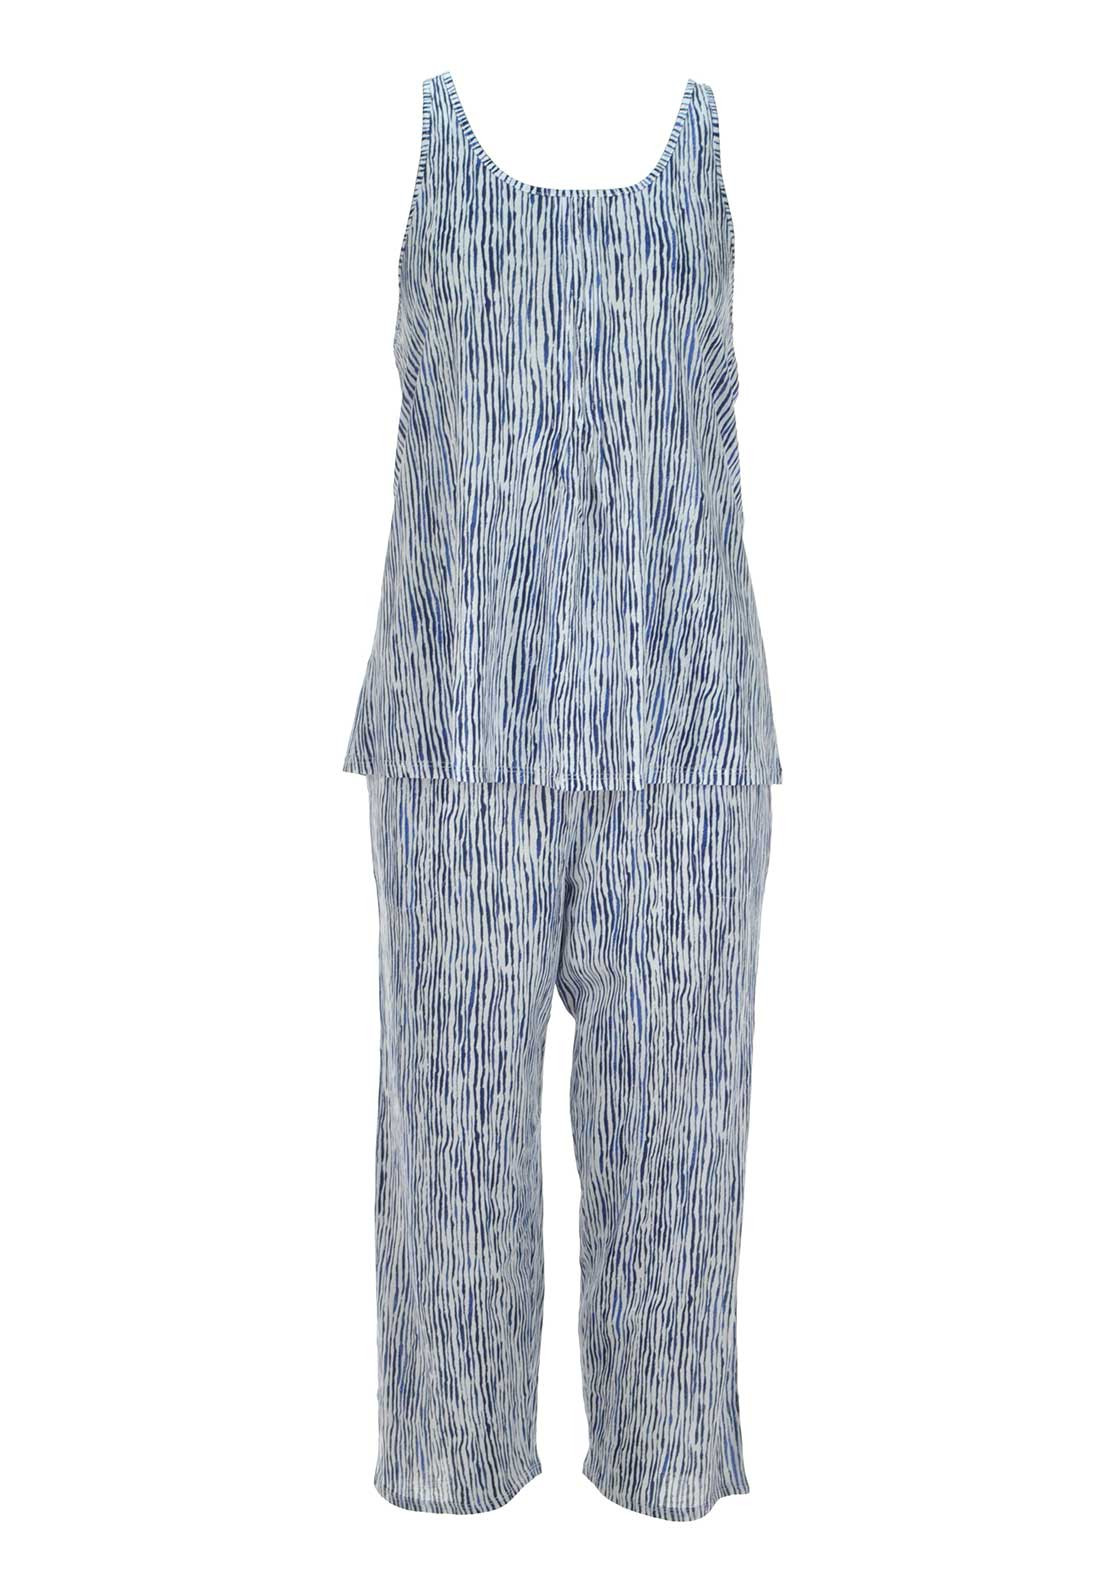 DKNY Womens Striped Pyjama Set, Navy and White